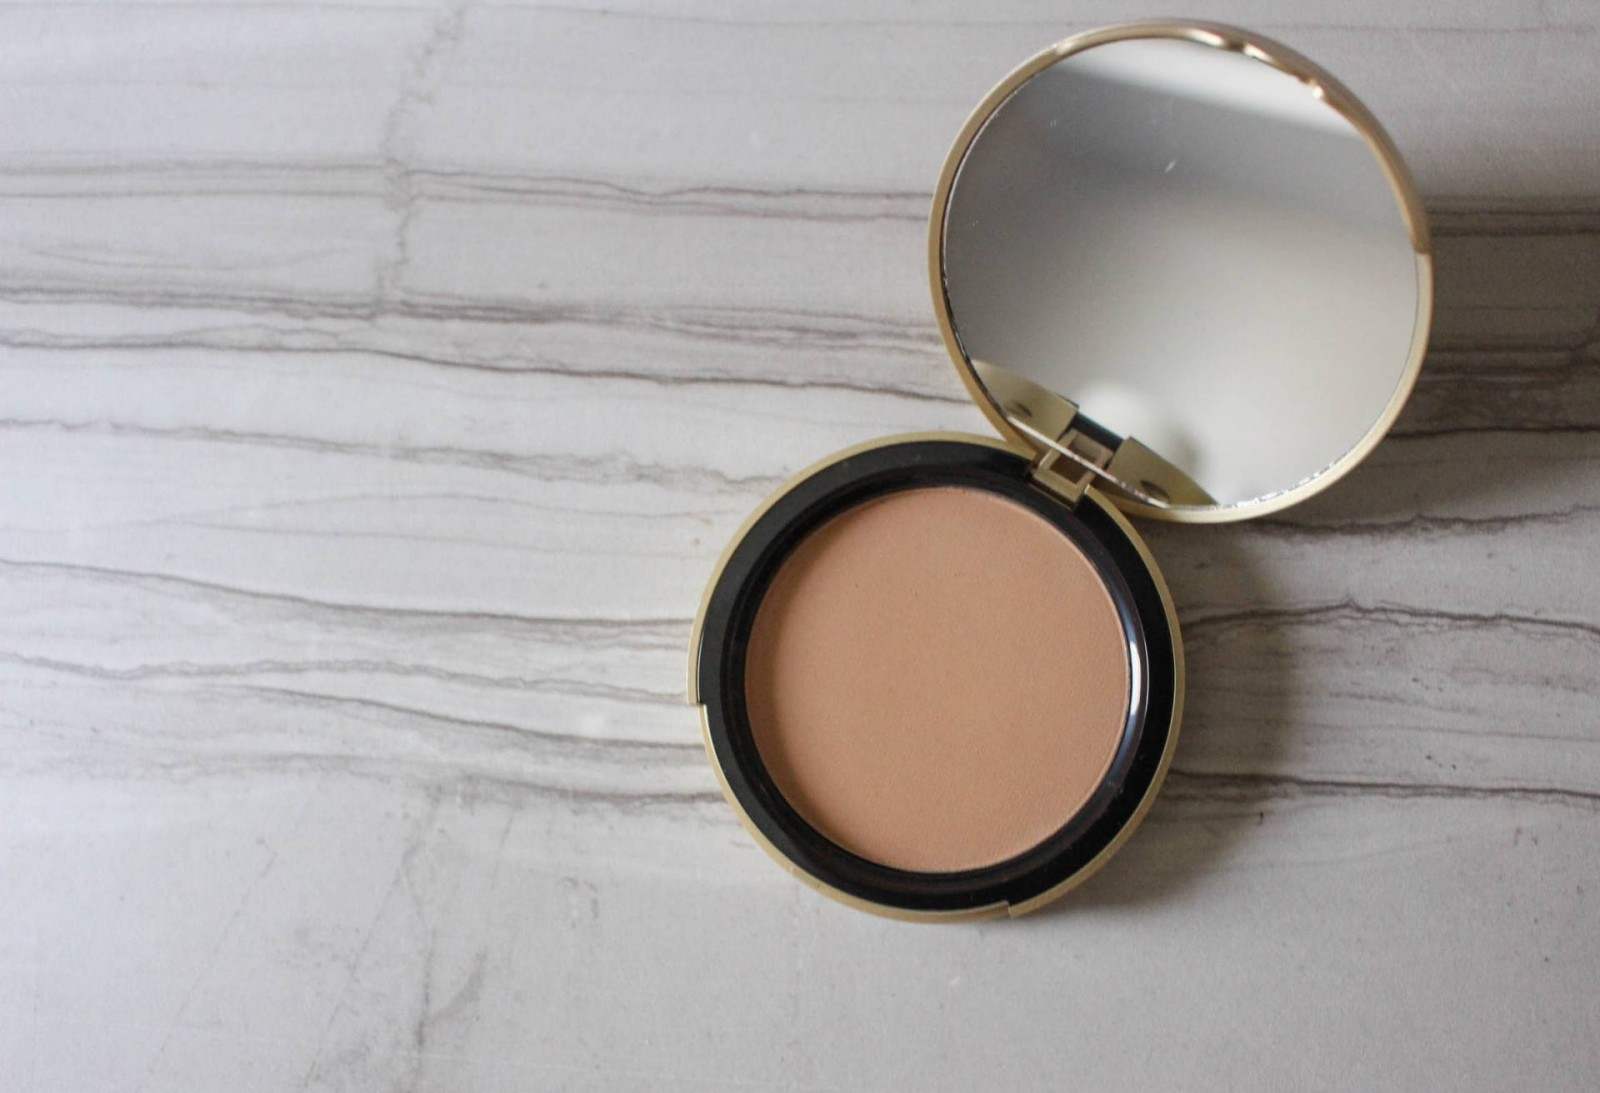 My Most Expensive Makeup Purchase | Too Faced